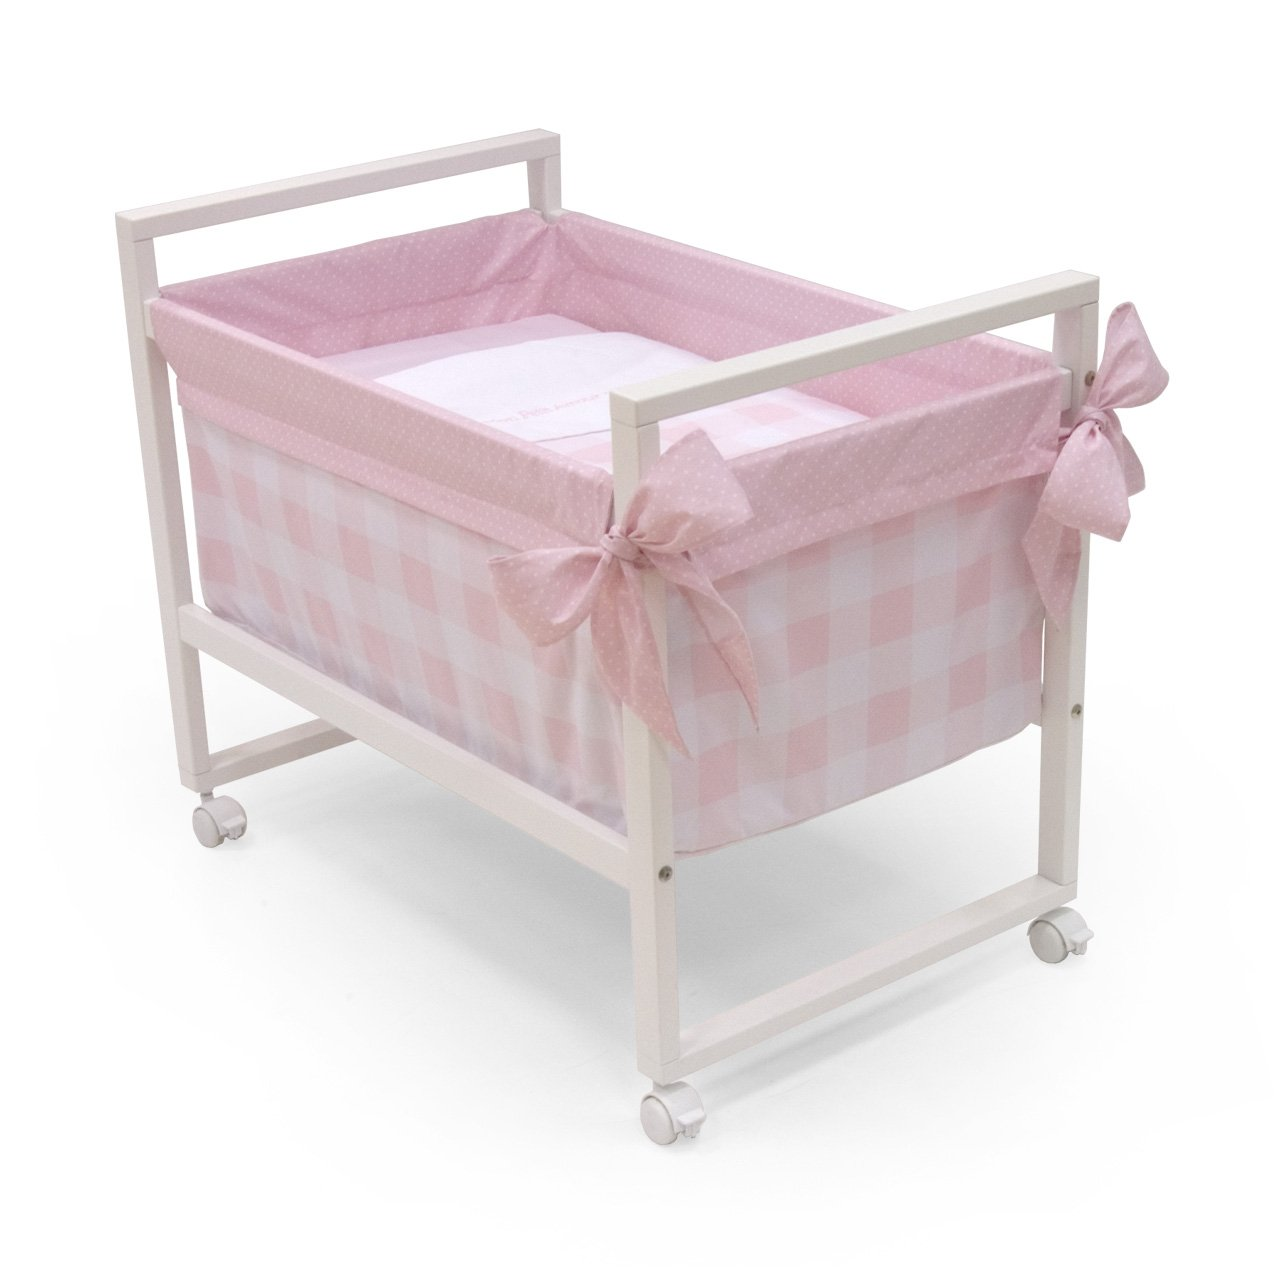 Cambrass Crib Next (56 x 90 x 73 cm, Bebe Pink)       Babyreview and more information